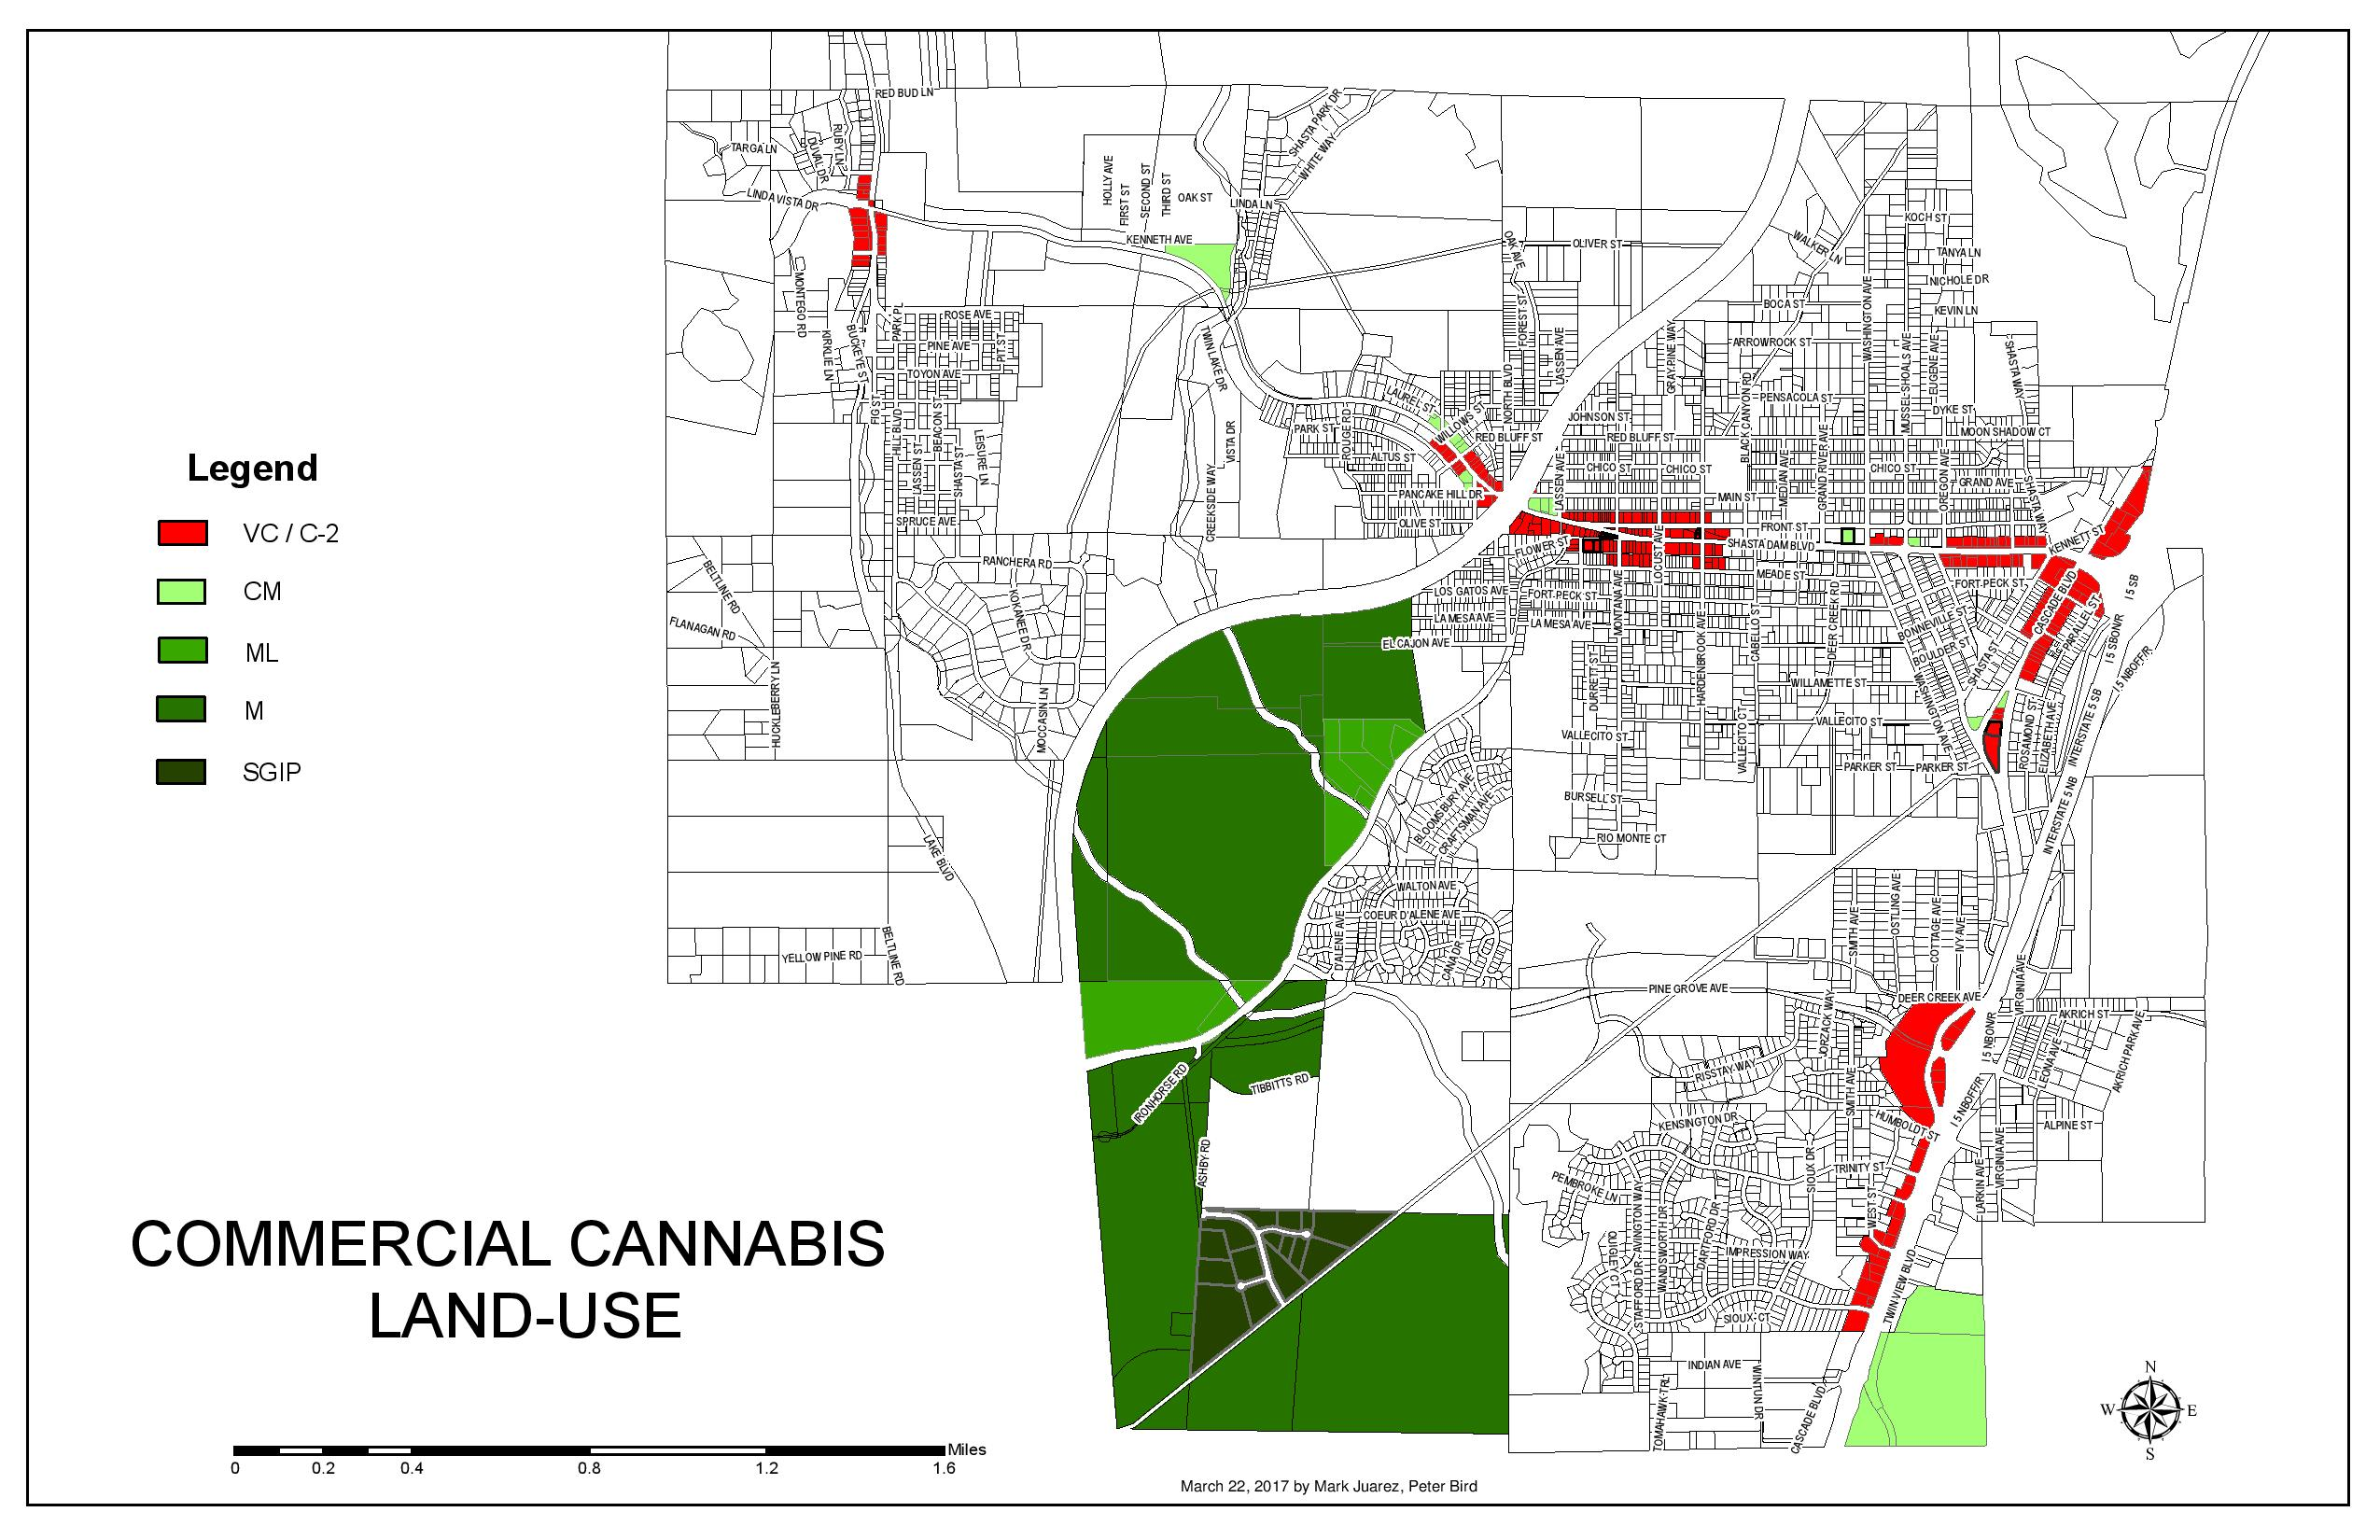 Commercial Cannabis Land-Use